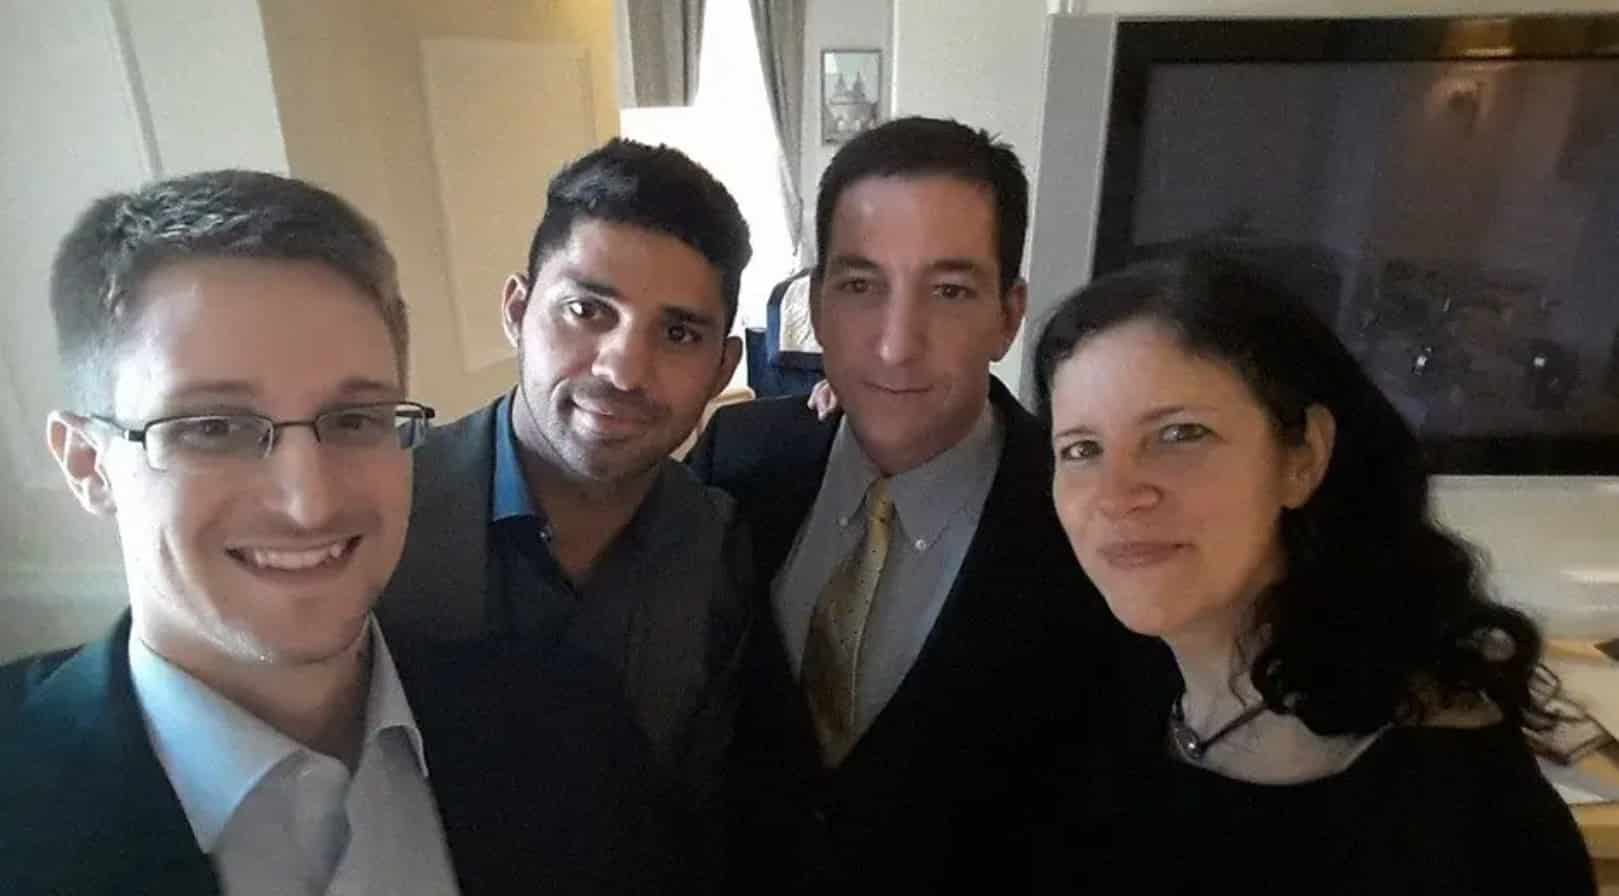 Fake Snowden? Fake Greenwald? Was it all a Limited Hangout?